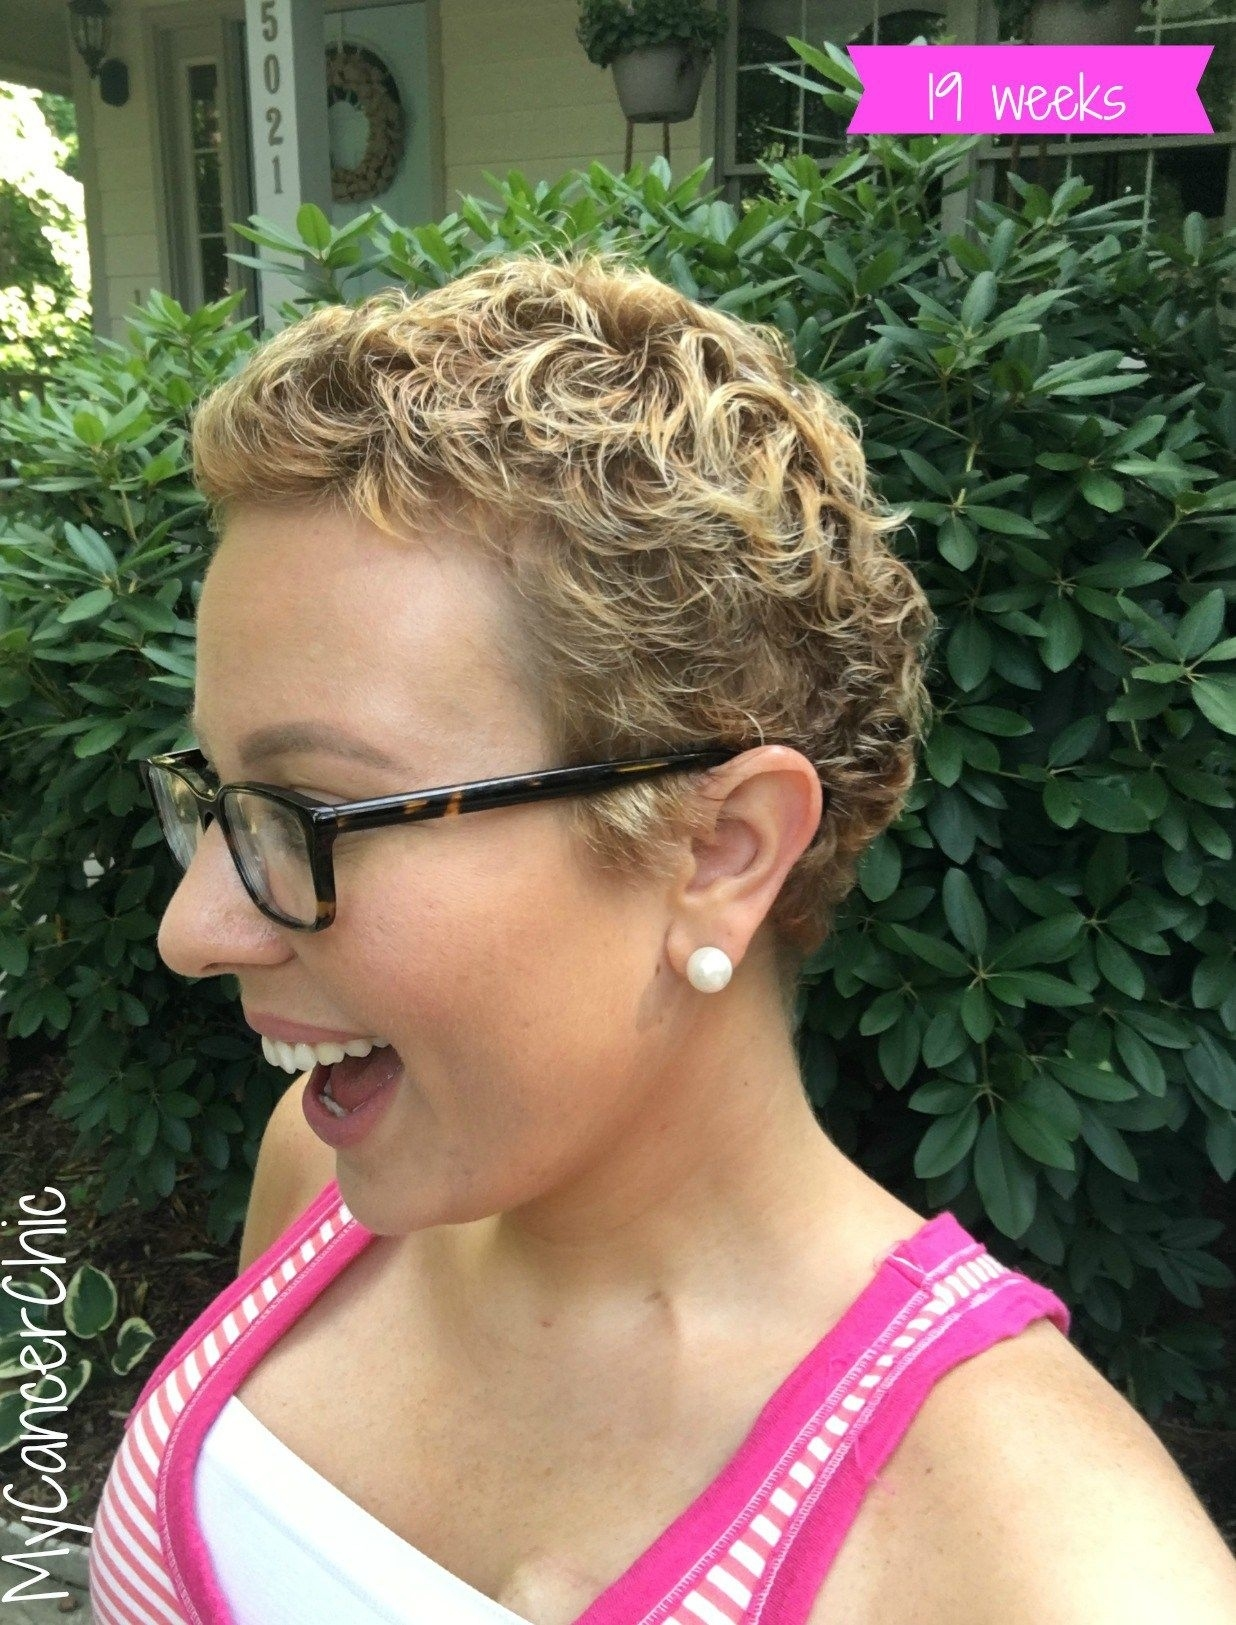 Fashionable Hairstyles For Post Chemo Curly Hair - Wavy ...